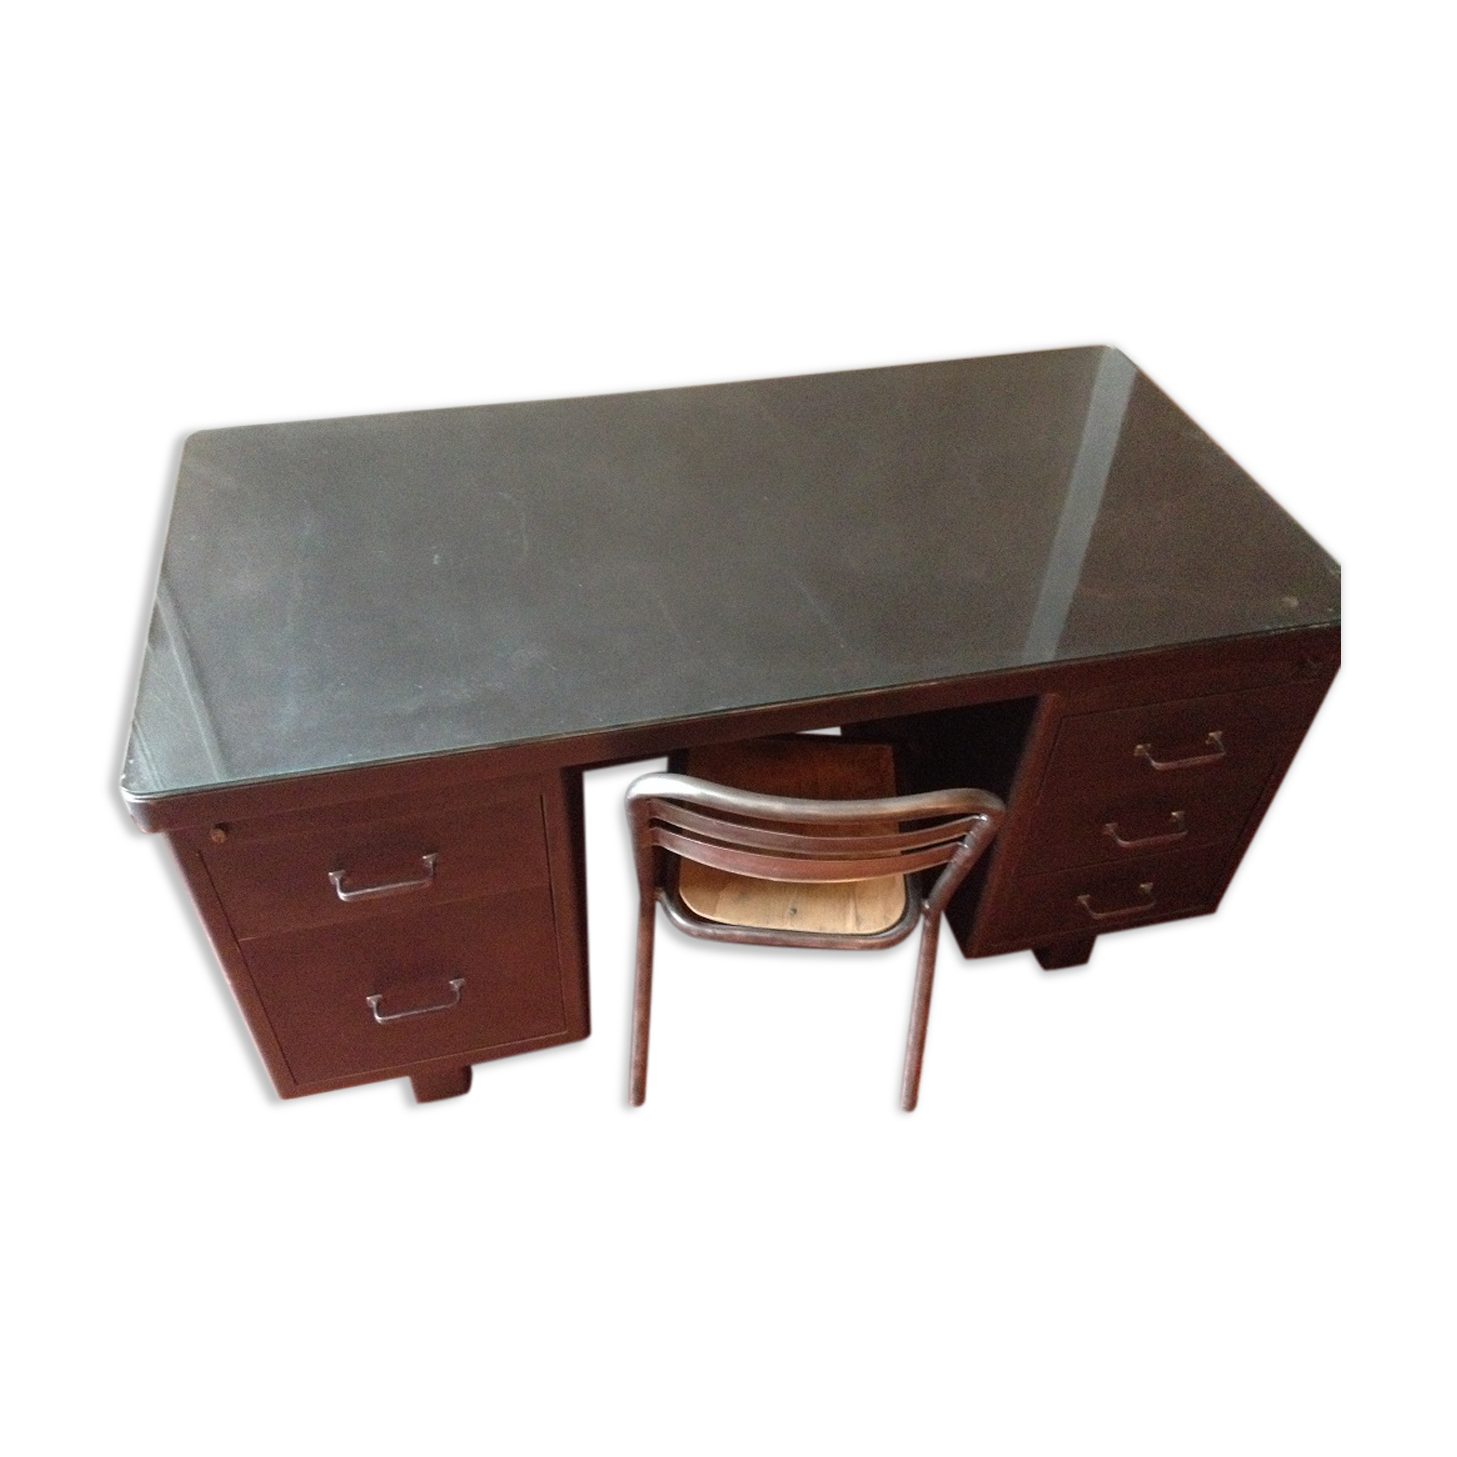 bureau verre simple bureau plateau verre mm decor manhatthan bureau pas cher with bureau verre. Black Bedroom Furniture Sets. Home Design Ideas